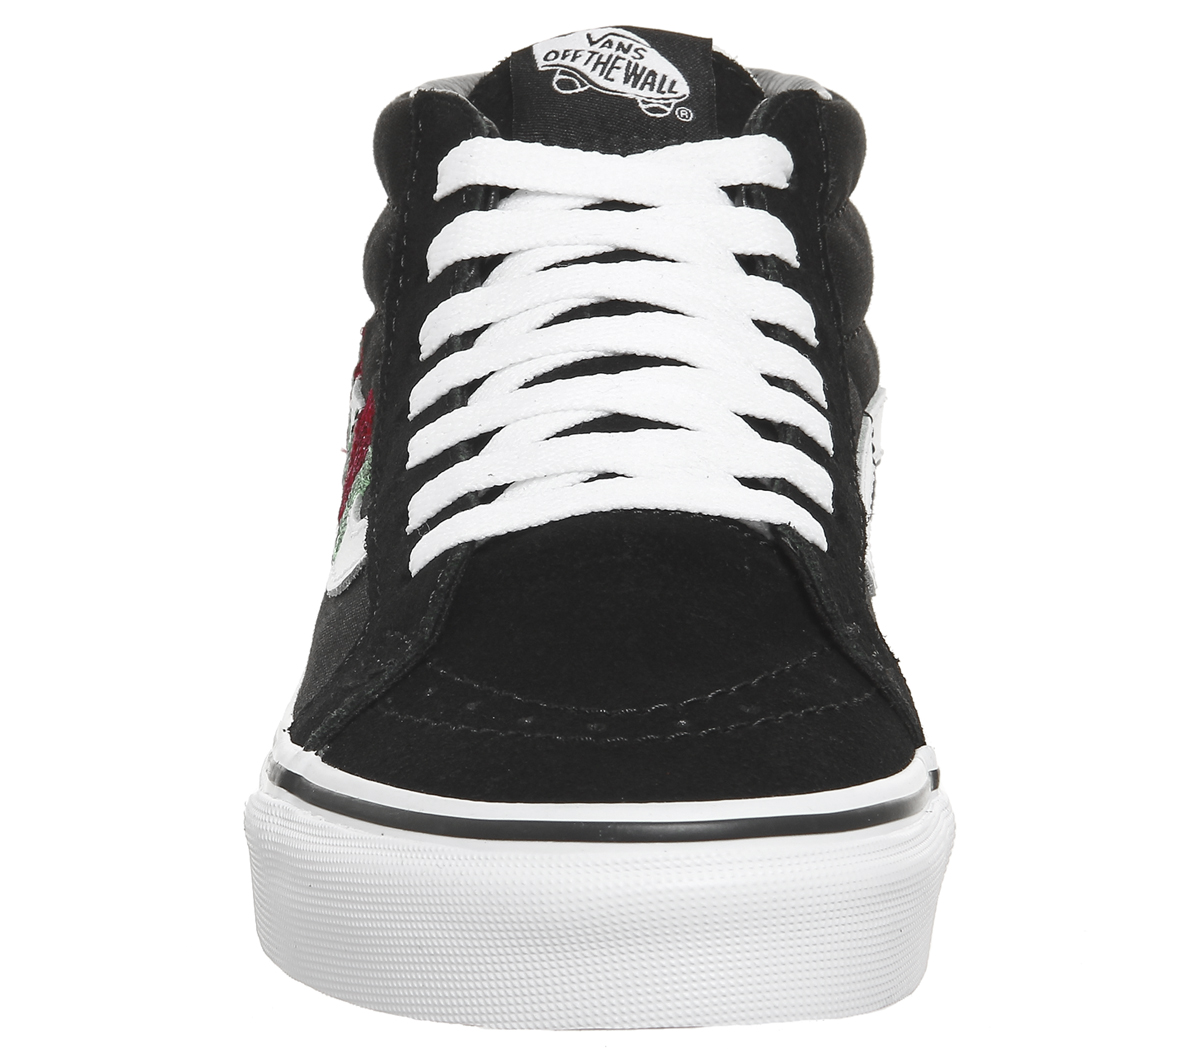 89eff829444e58 Sentinel Womens Vans Sk8 Mid Trainers BLACK RED ROSE Trainers Shoes